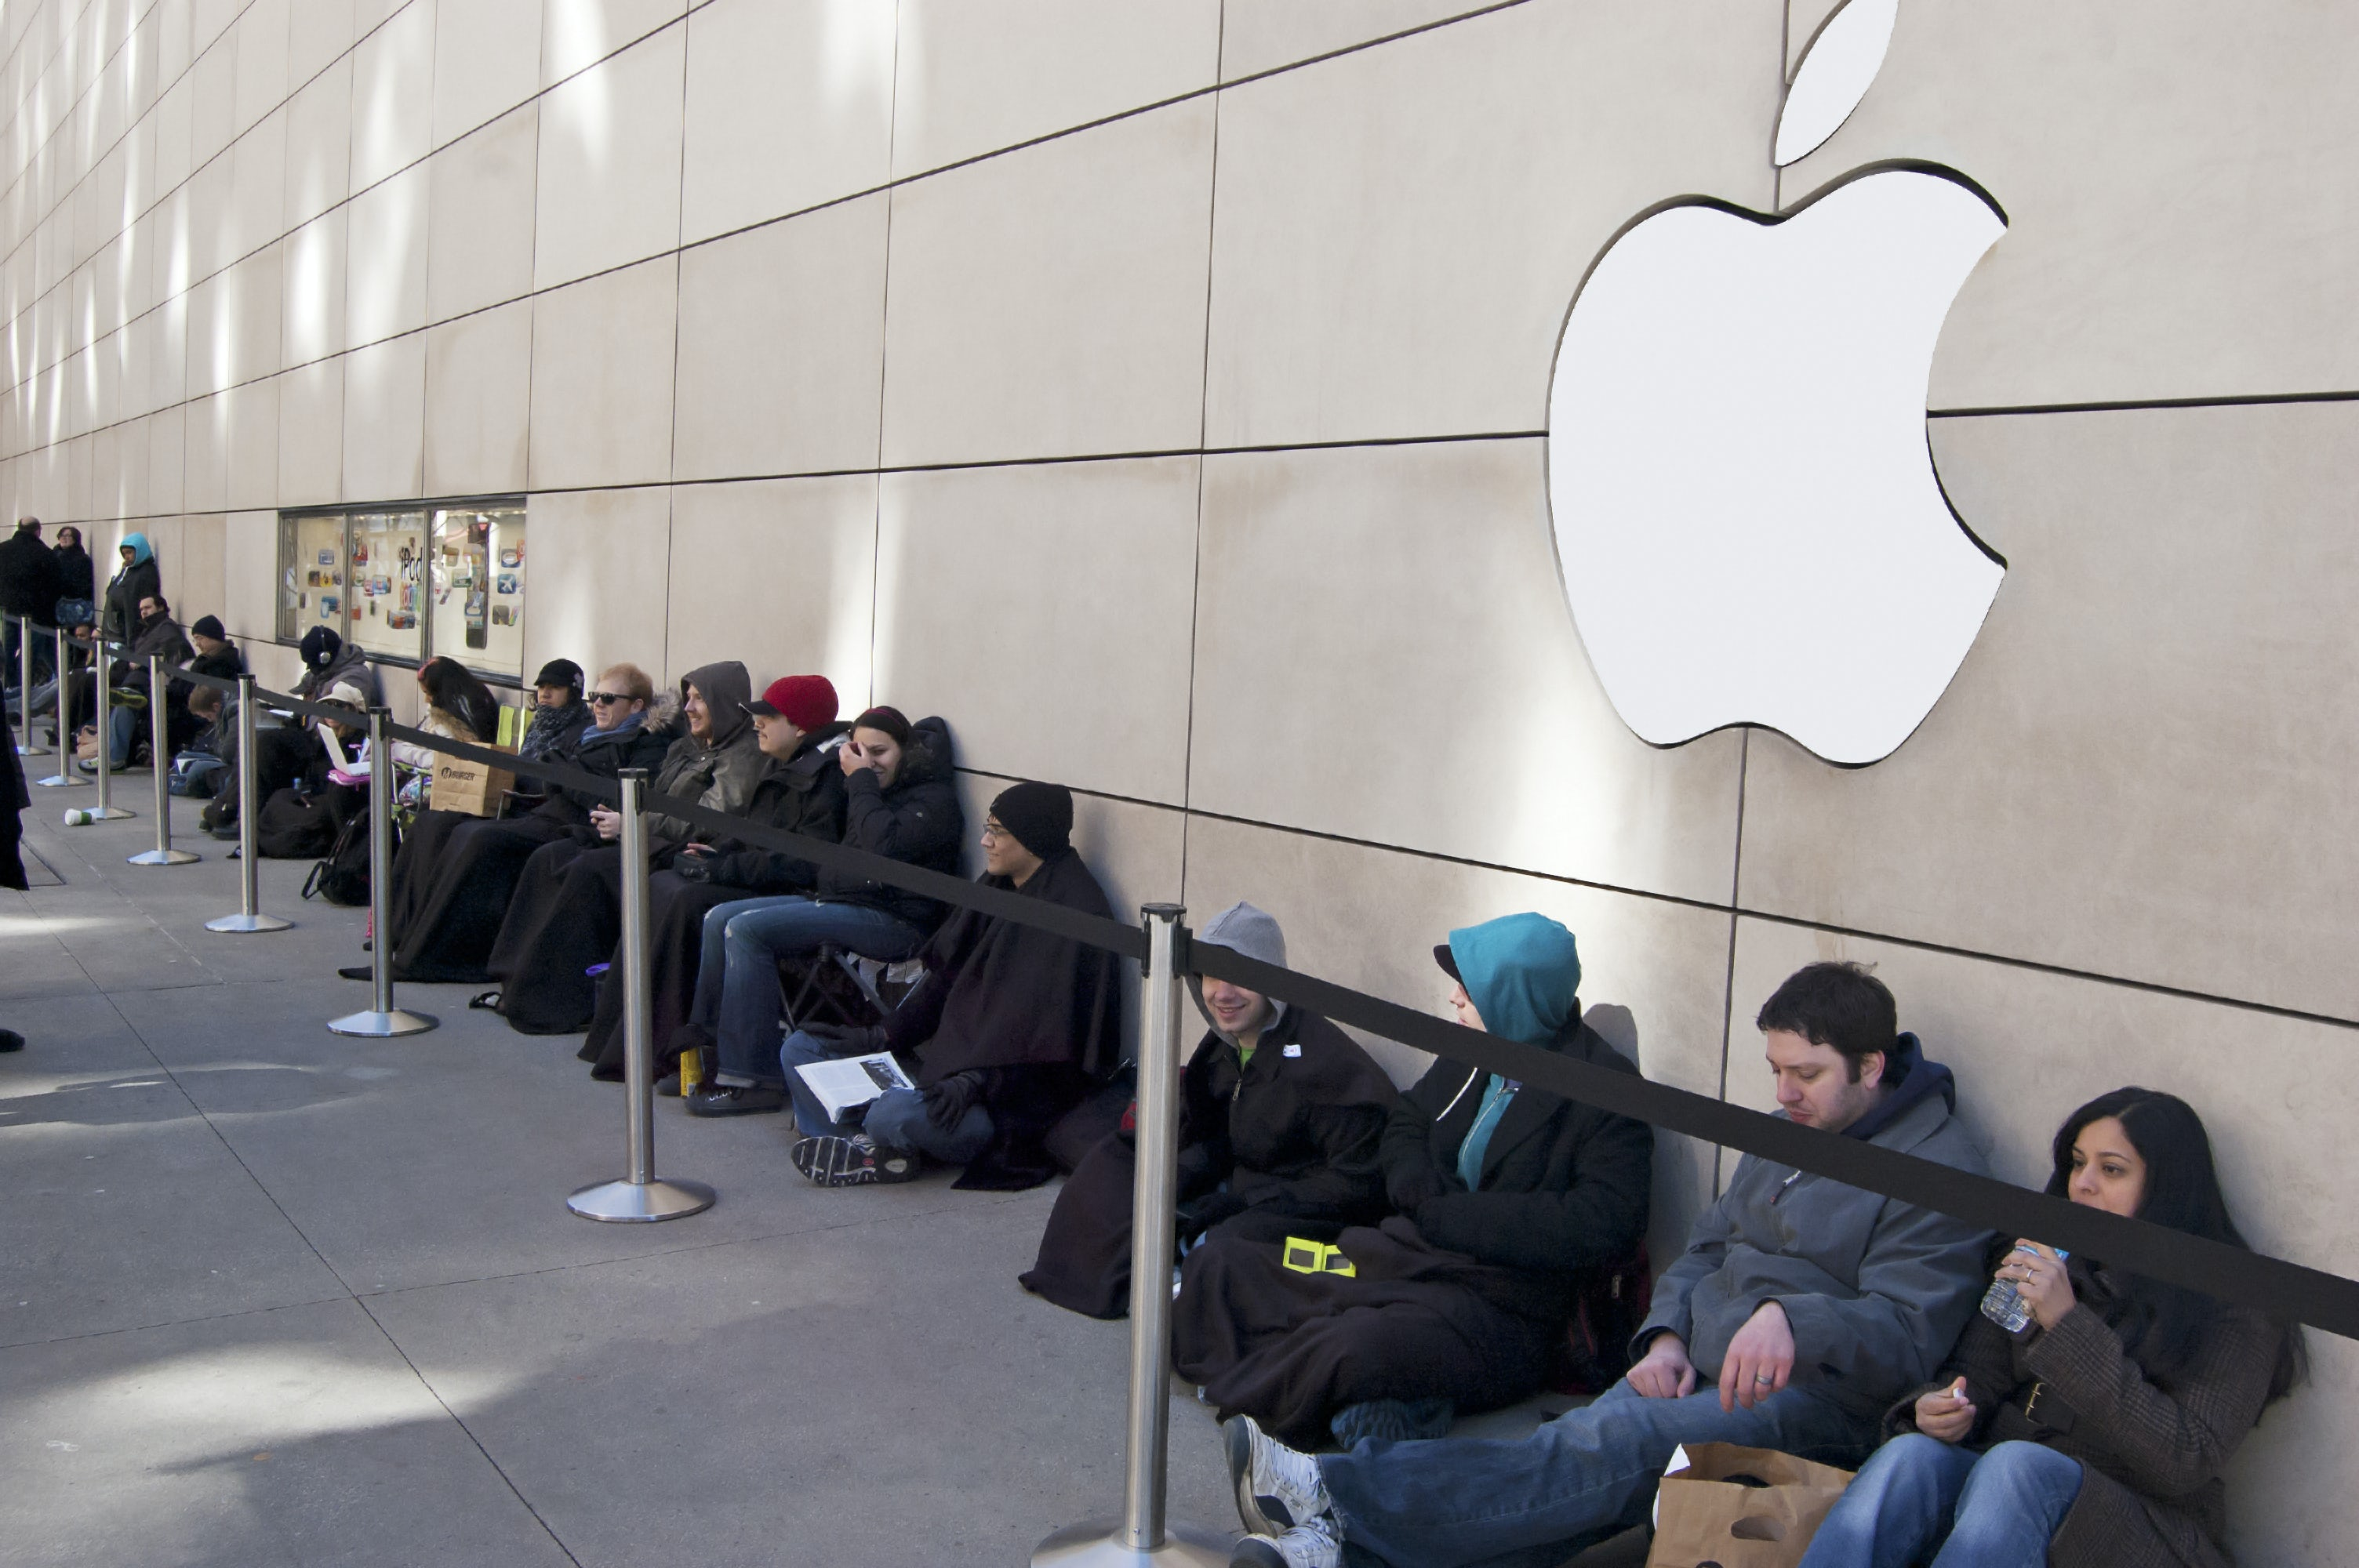 People waiting in line hours before Apple's newest release in downtown Chicago, US | Source: Shutterstock